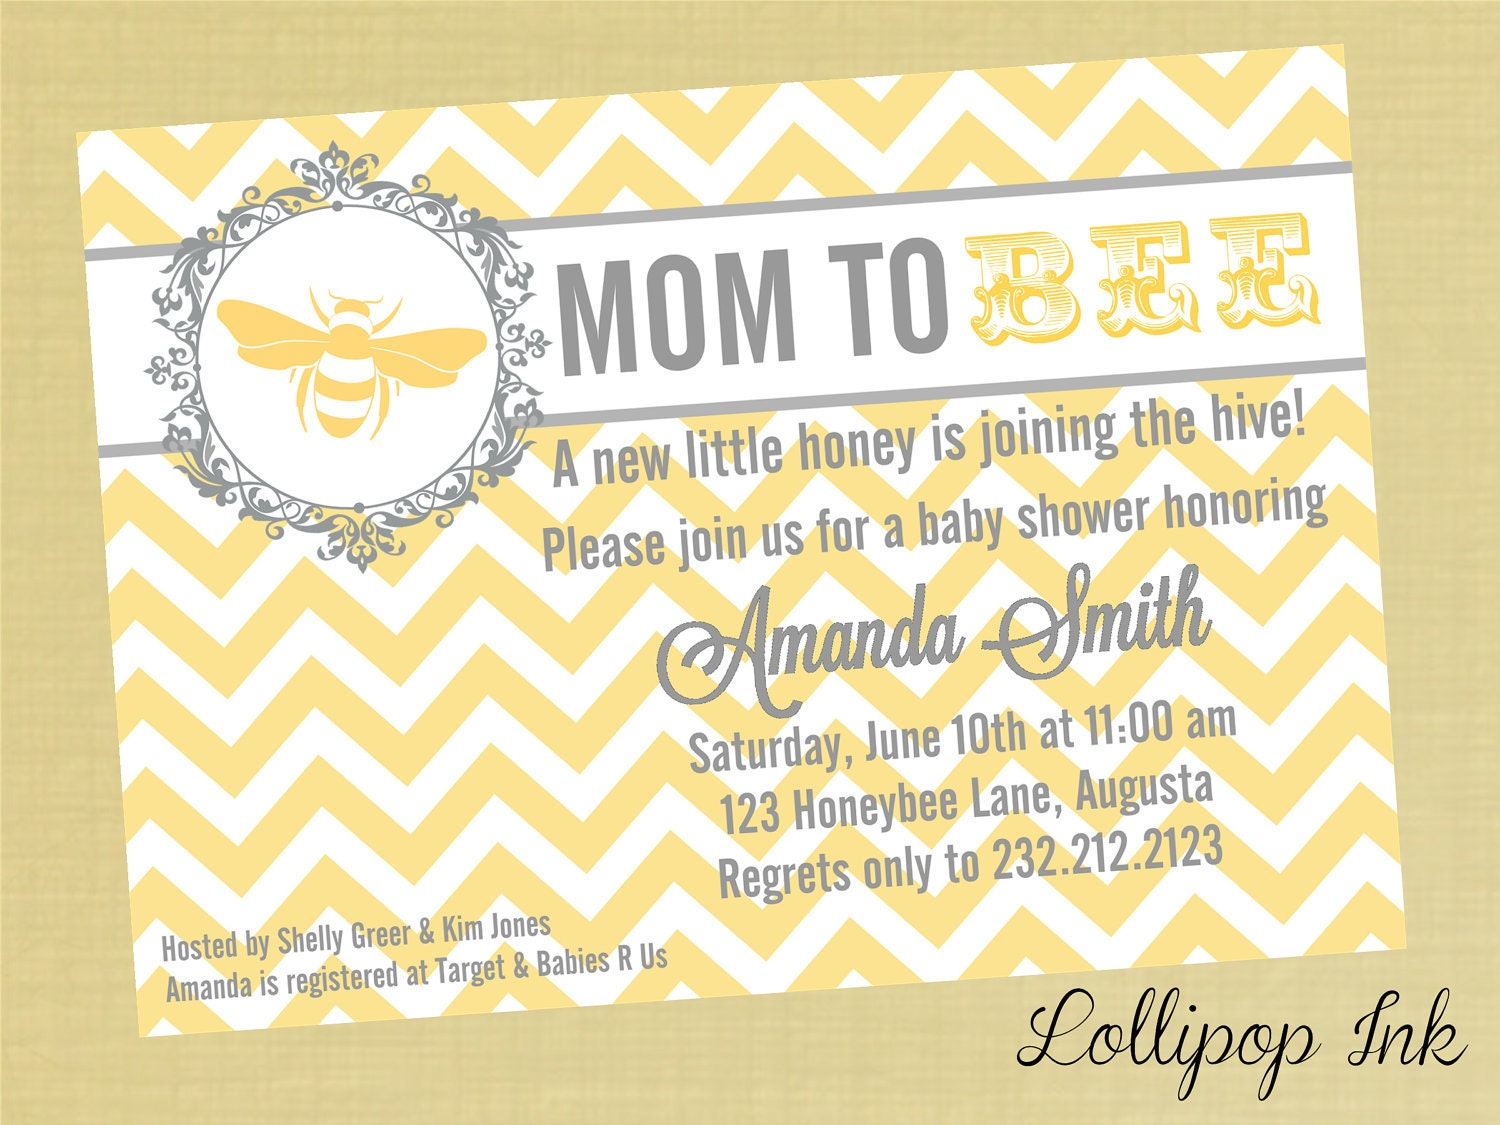 Mommy To Bee Invitations with luxury invitations template